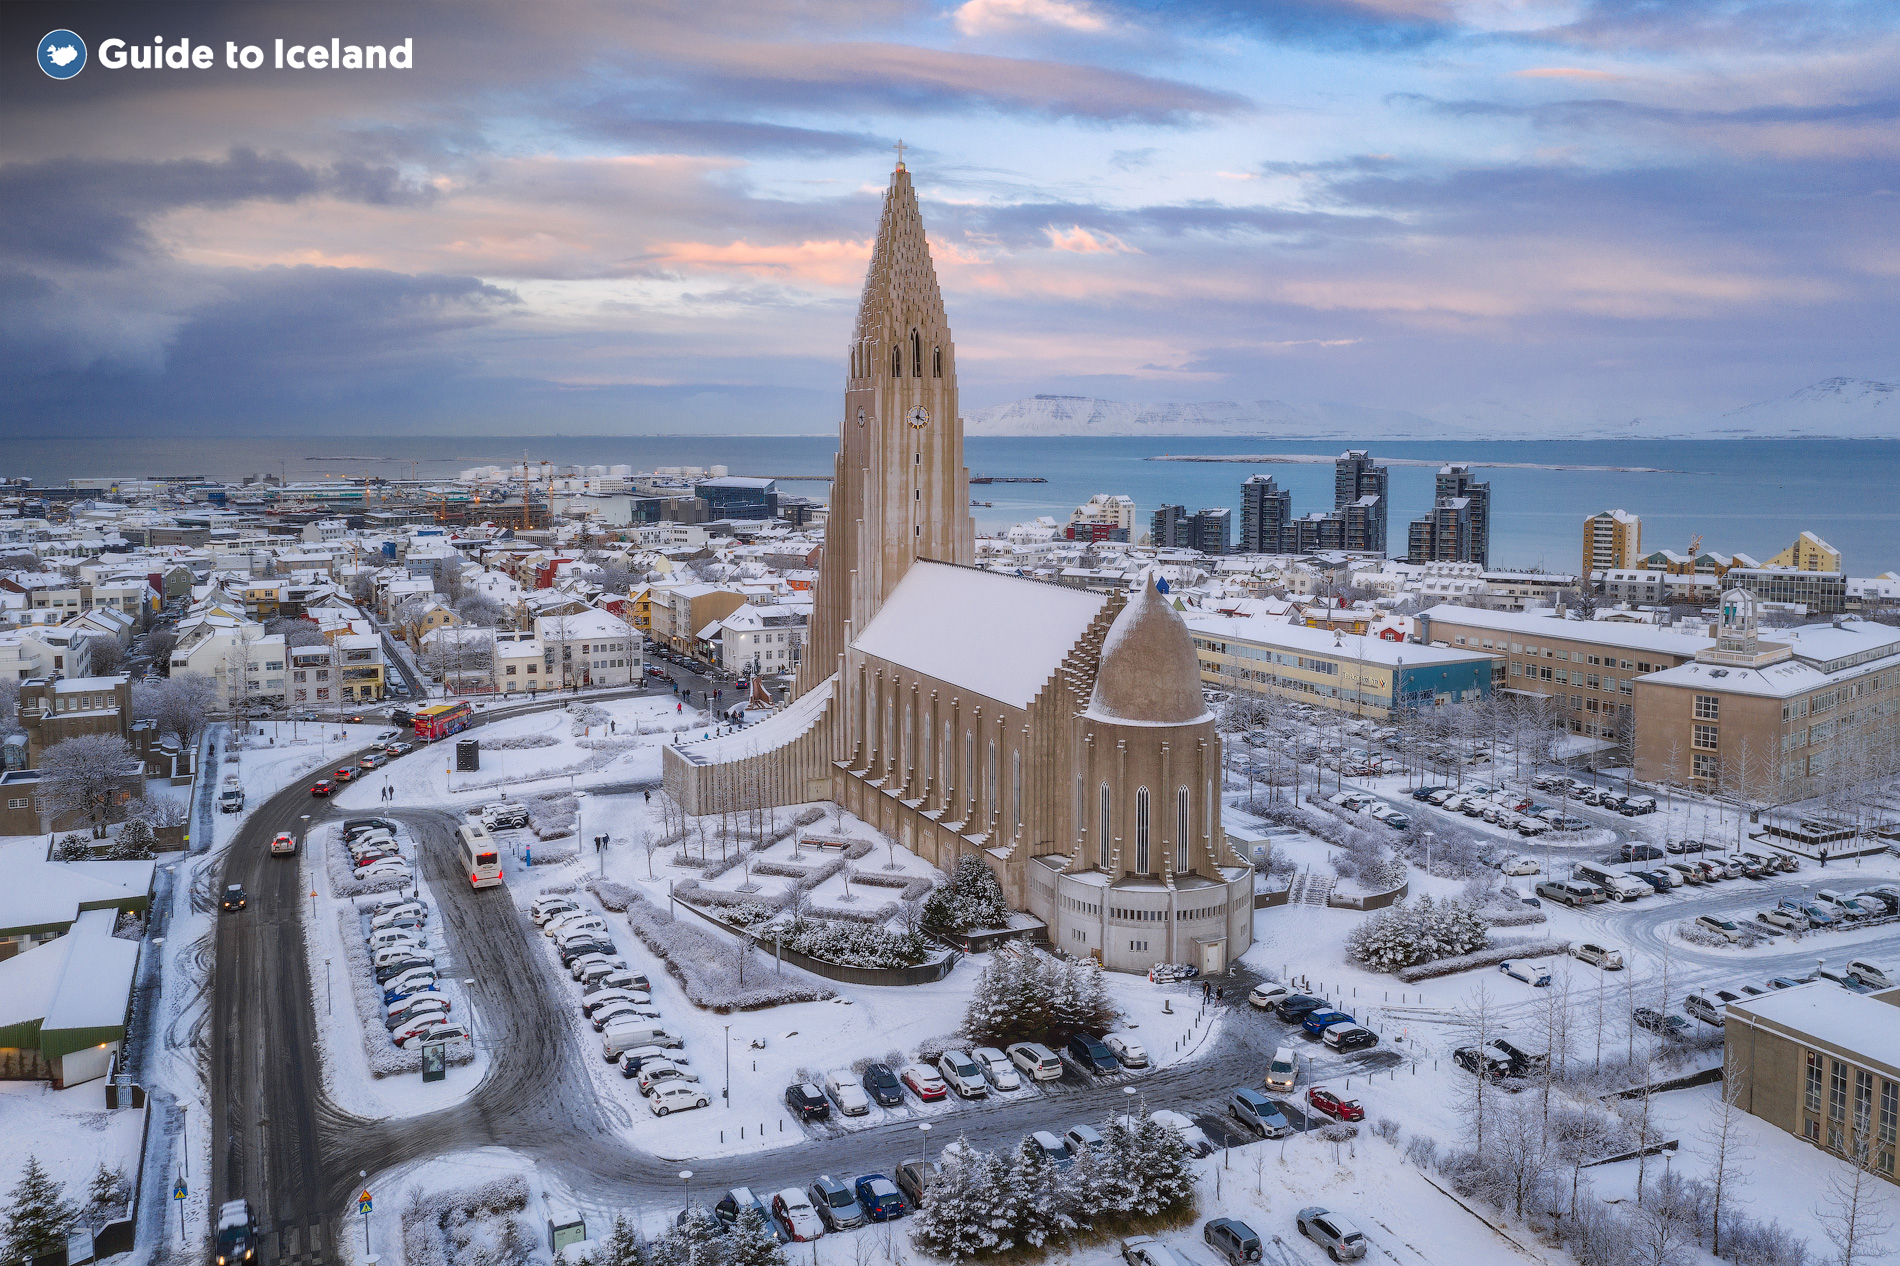 5 Day Family-Friendly Winter Package | Golden Circle, South Coast, Reykjavik & Blue Lagoon - day 4